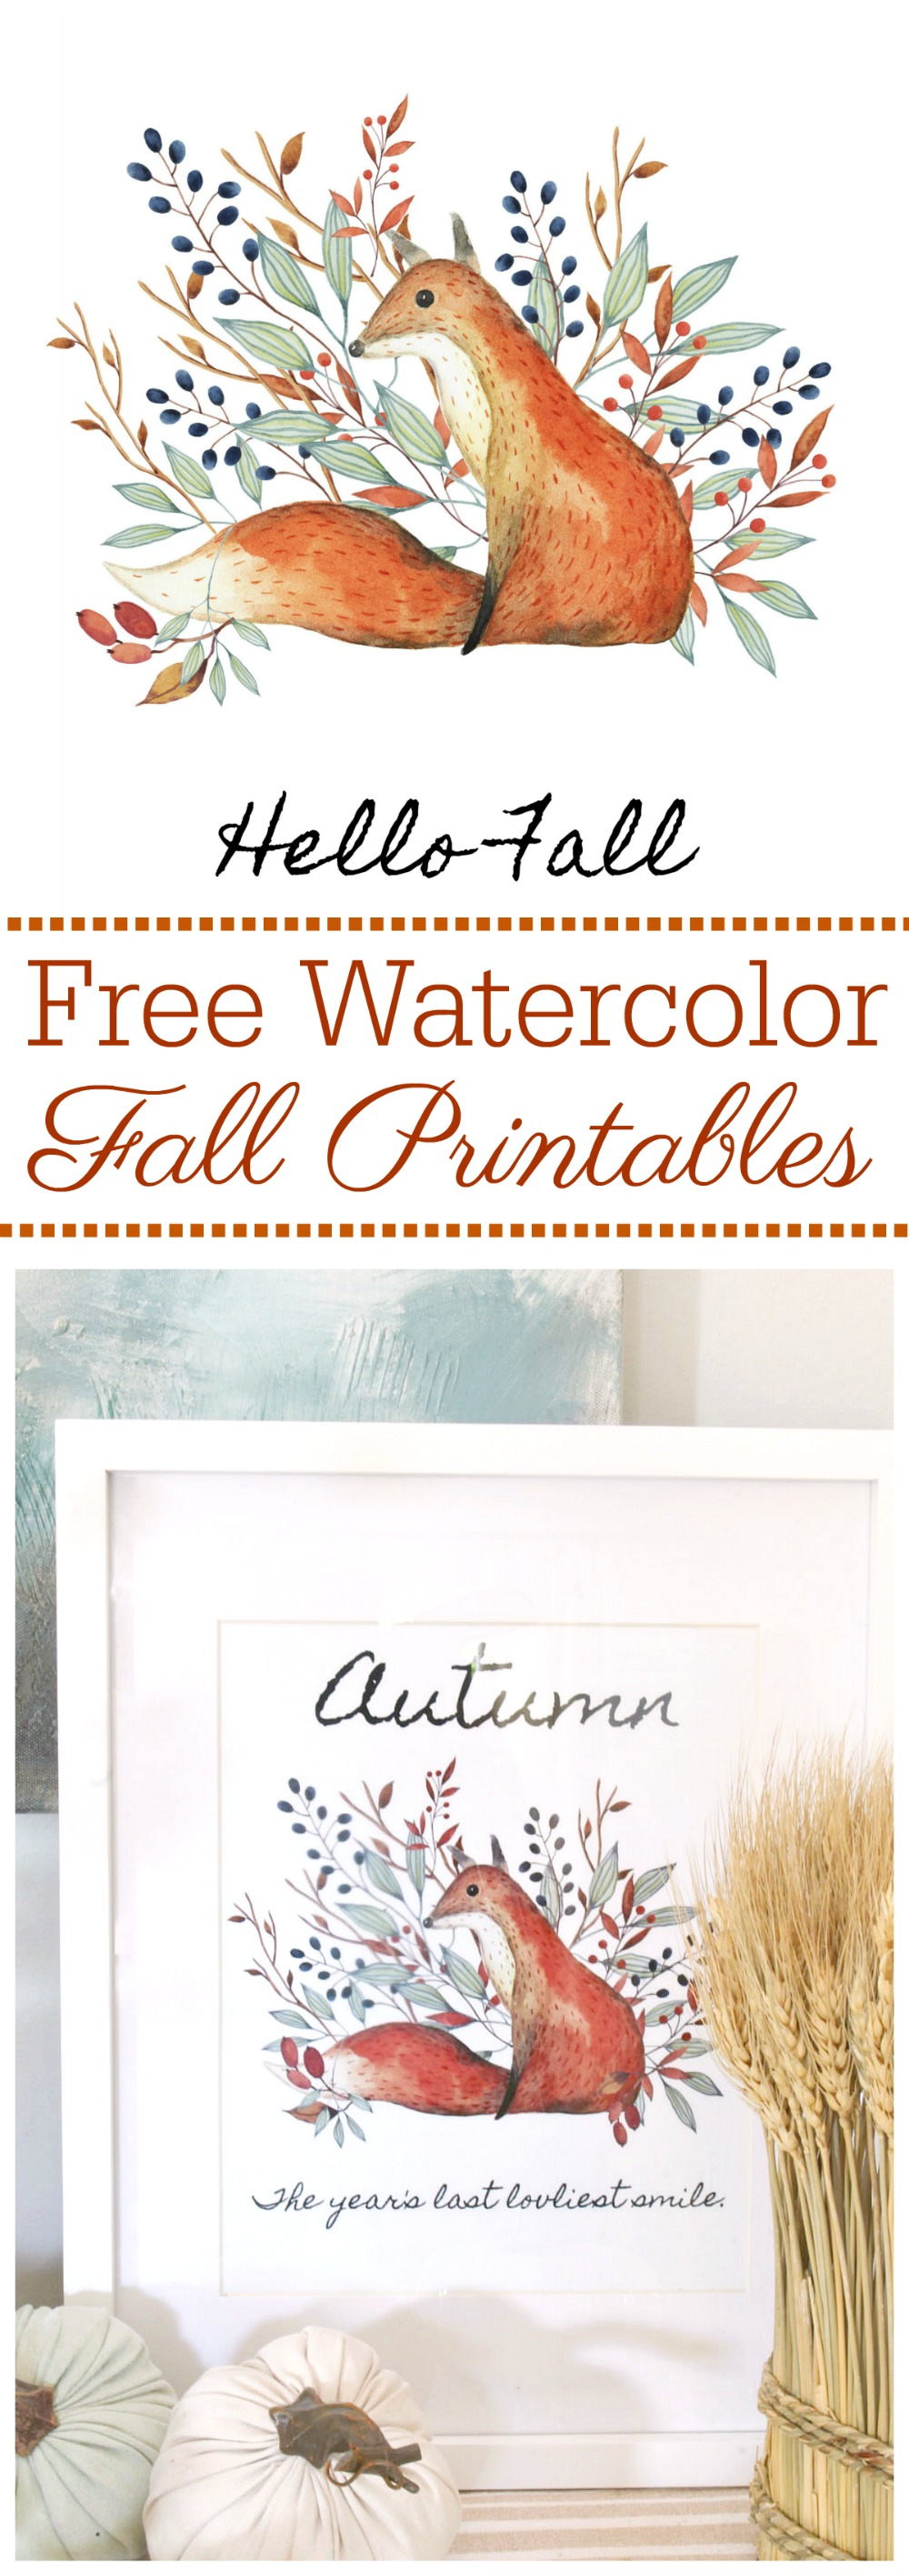 Beautiful watercolor free fall printables. Rustic farmhouse style.